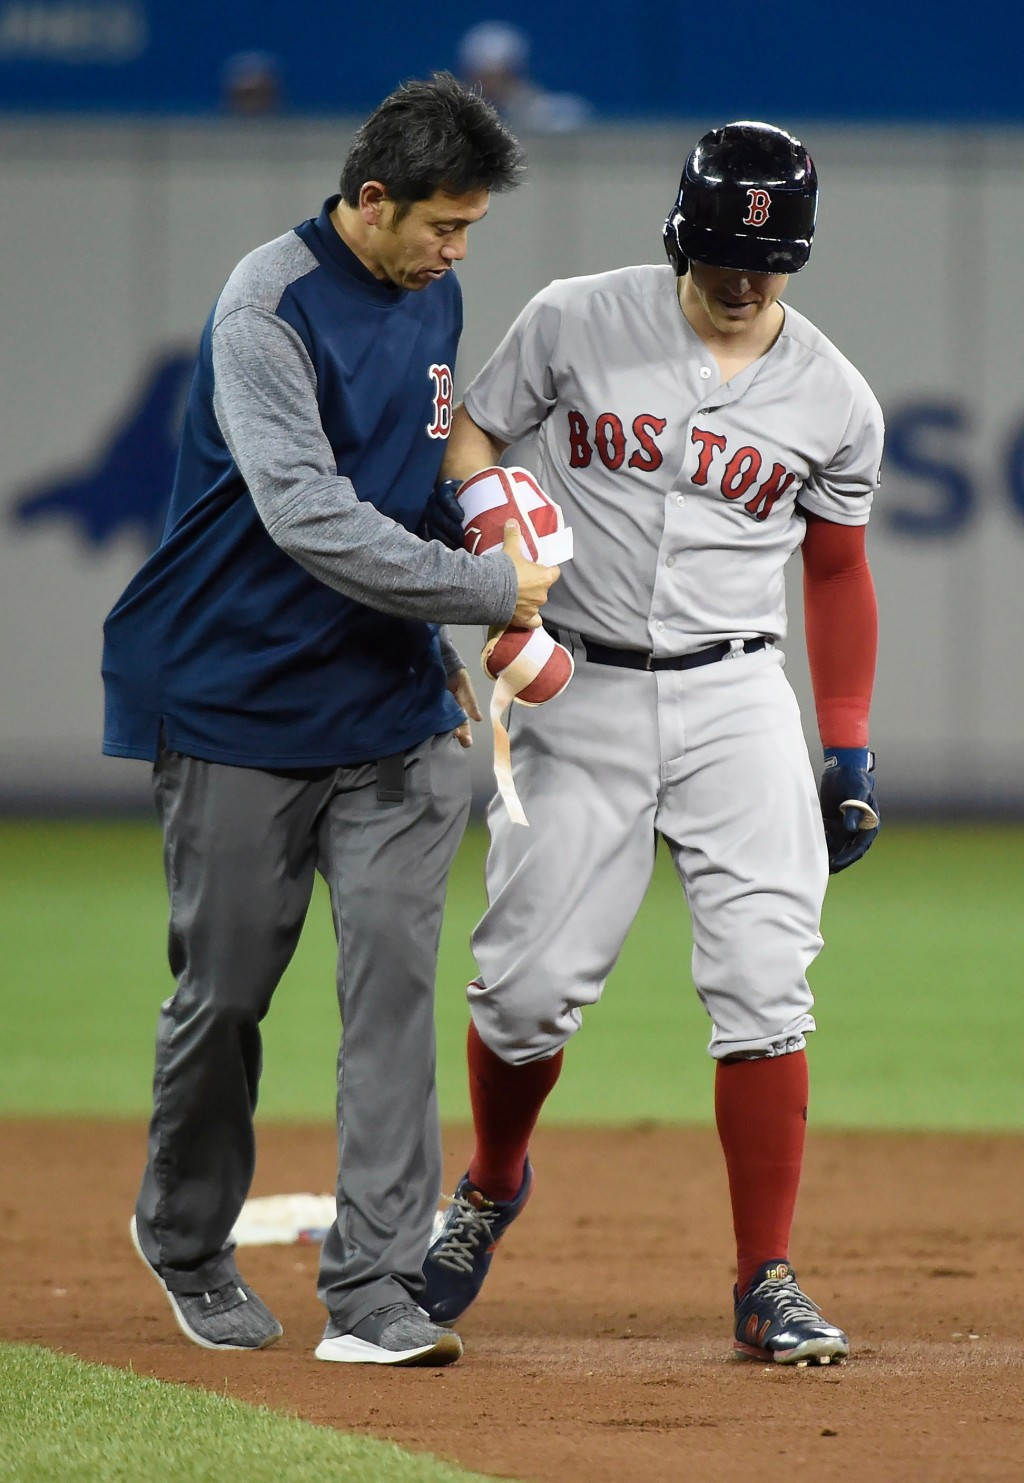 Boston Red Sox second baseman Brock Holt leaves with an injury during the third inning of the team's baseball game against the Toronto Blue Jays in To...